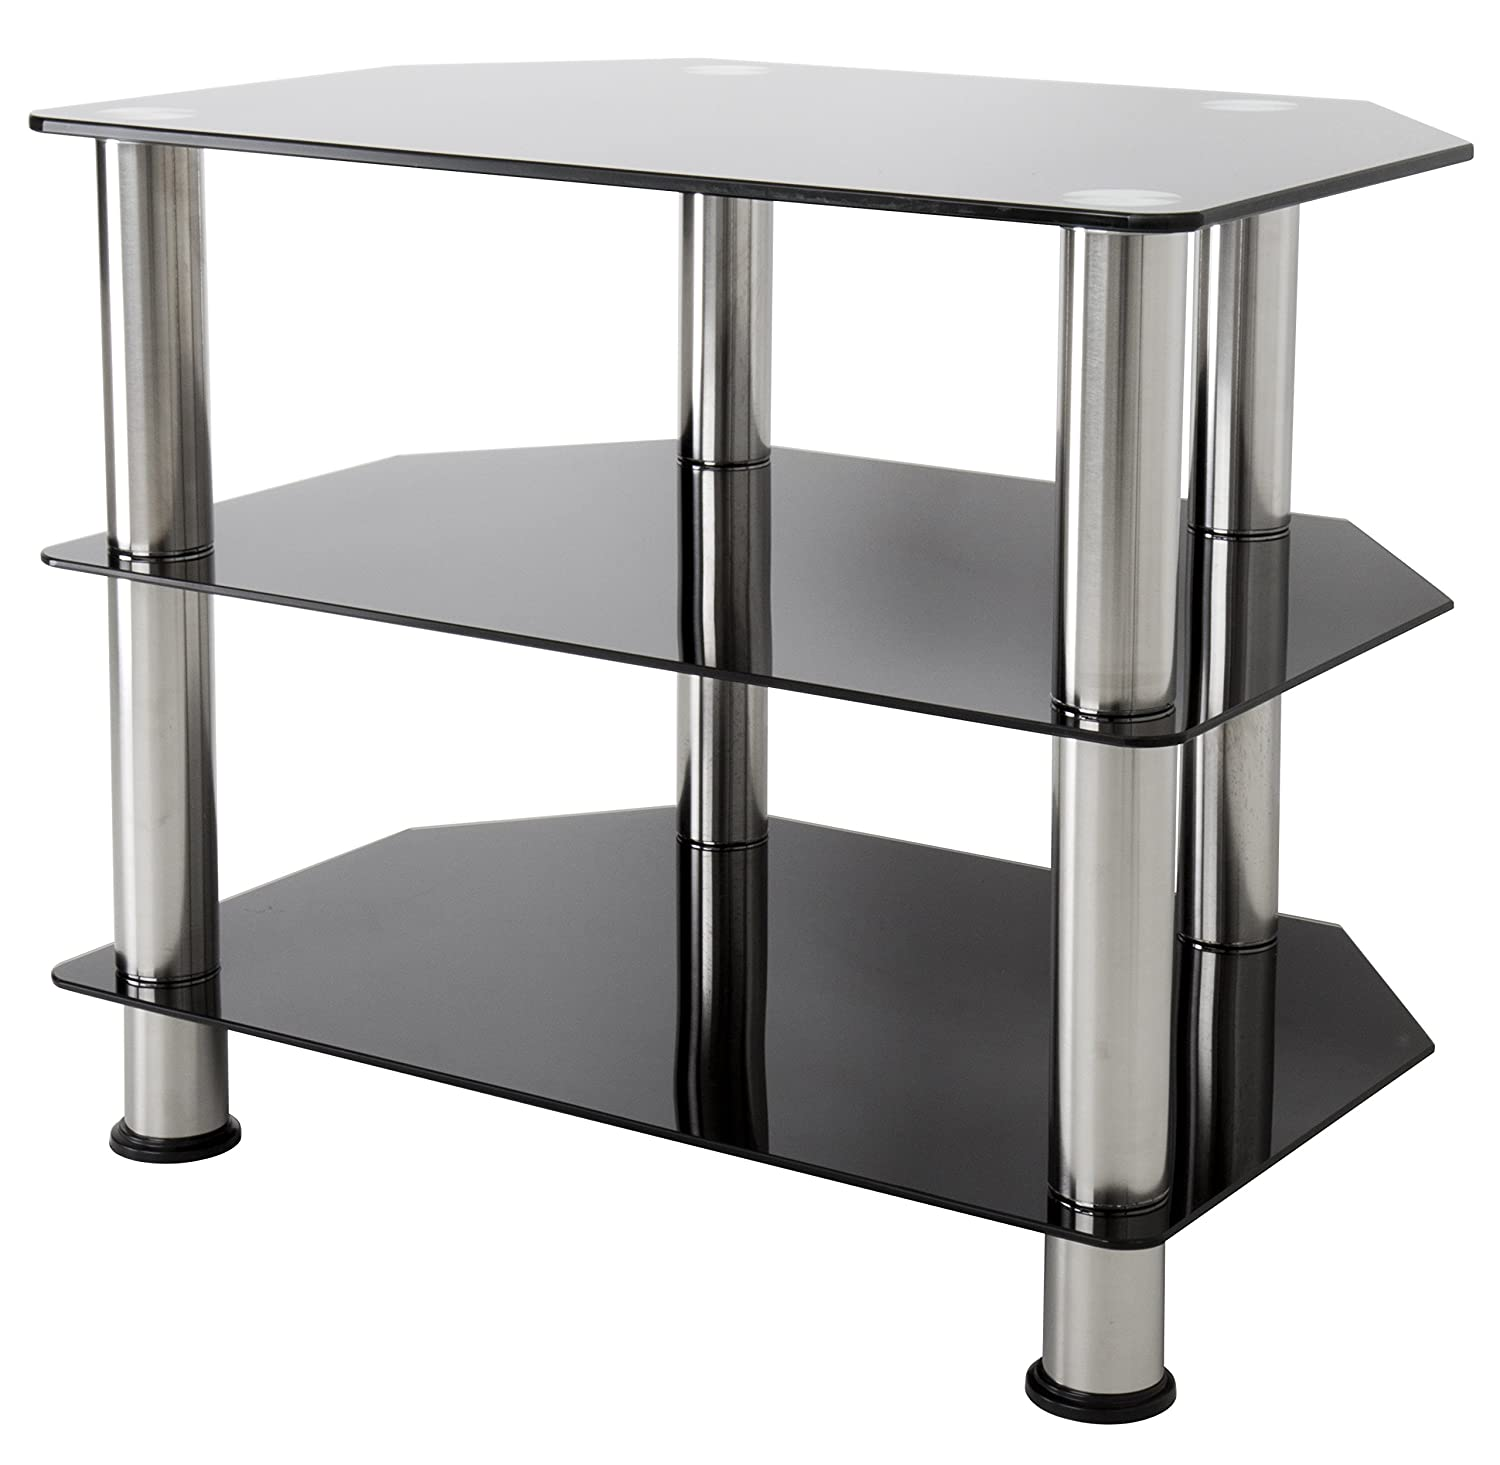 AVF SDC600-A TV Stand for Up to 32-Inch TVs, Black Glass, Chrome Legs